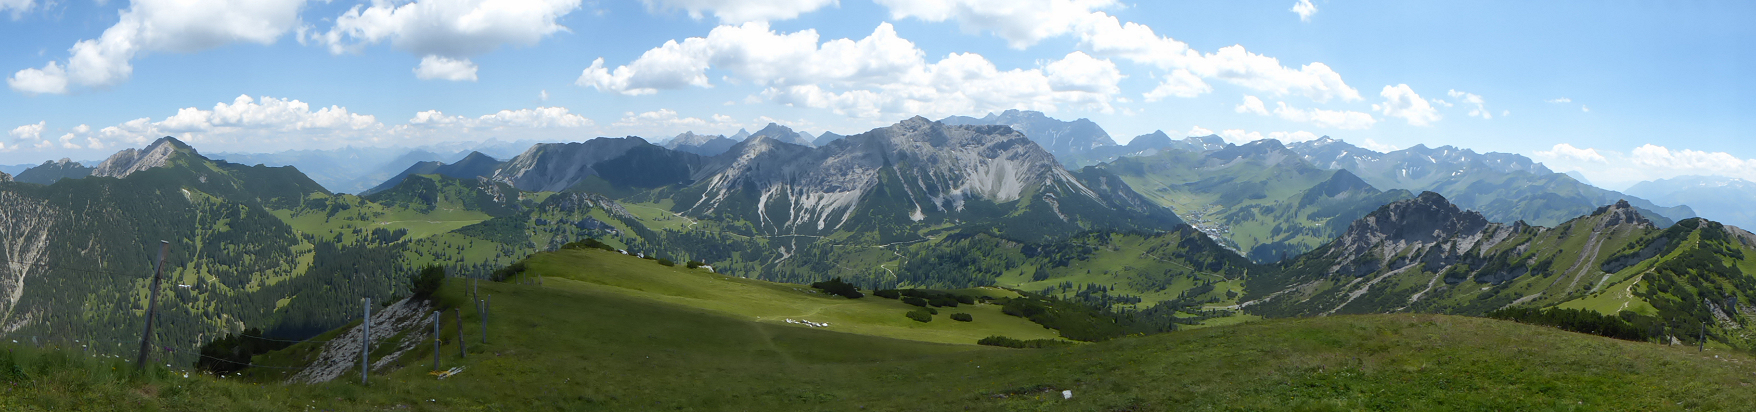 Panorama − View from Schönberg to Galinakopf (left), Ochsenkopf (Middle) and mountain range (rear right) with Augstenberg, Grauspitz and Falknis